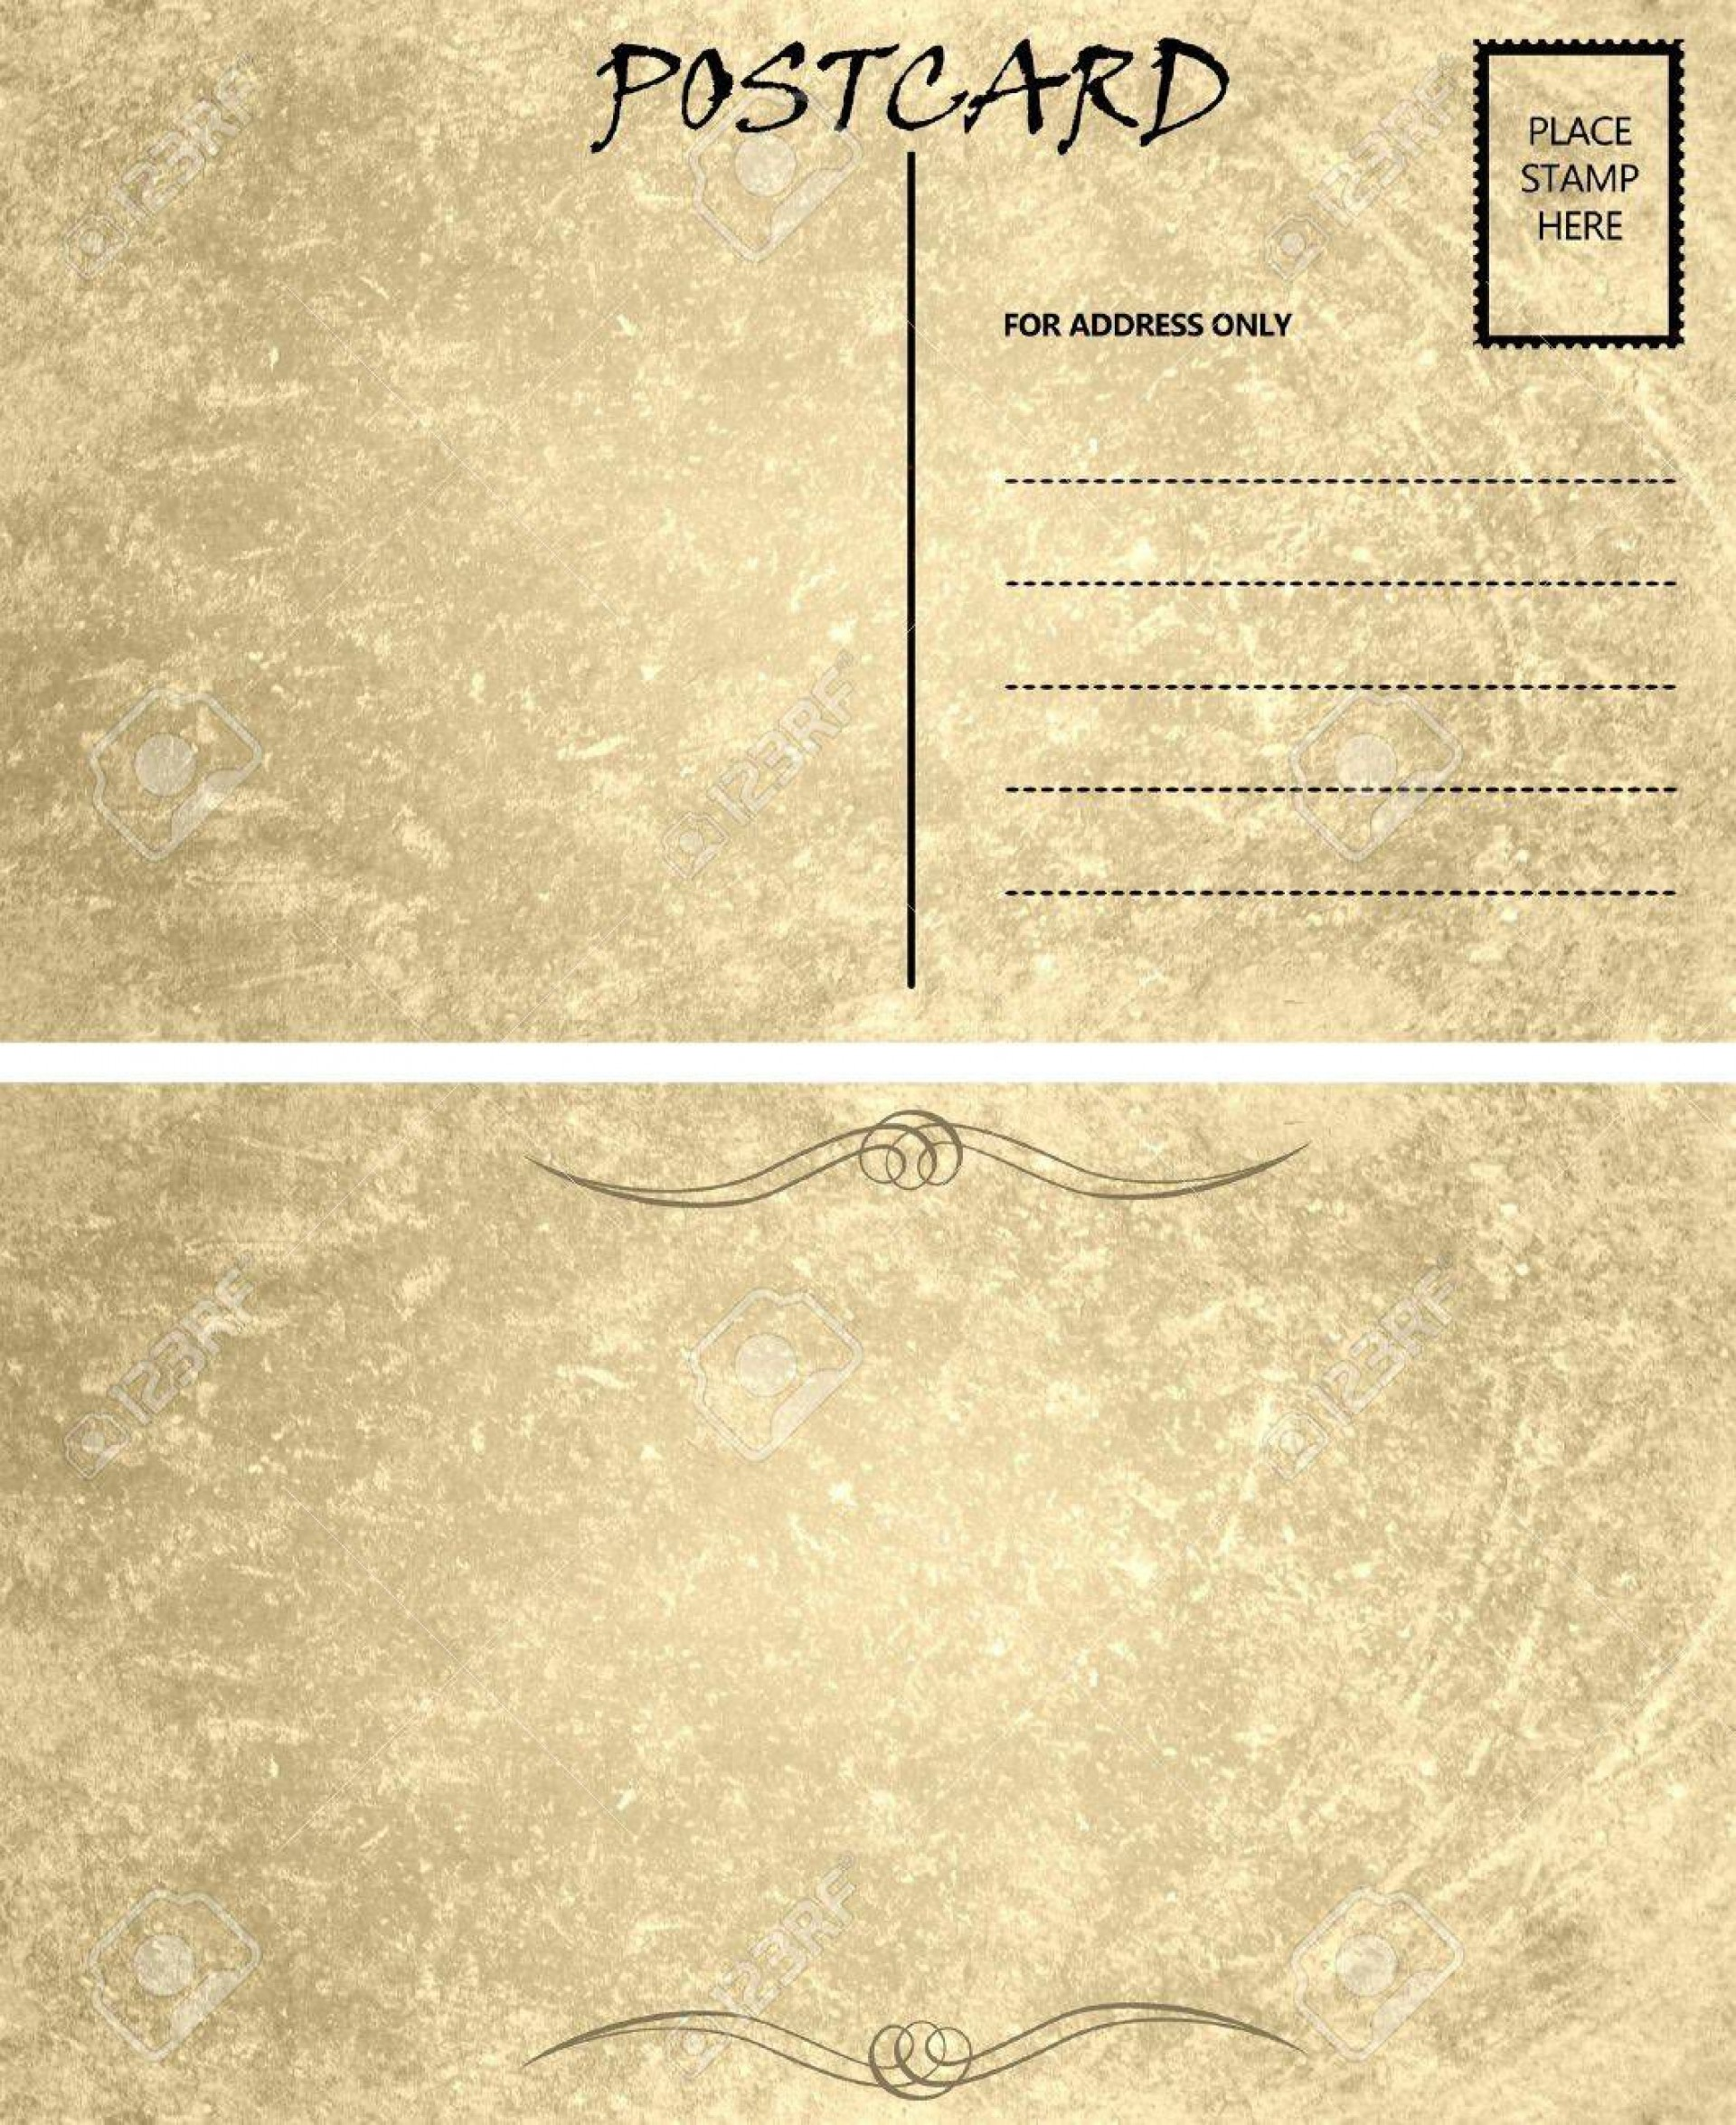 003 Impressive Postcard Template Front And Back Inspiration  Free Word1920